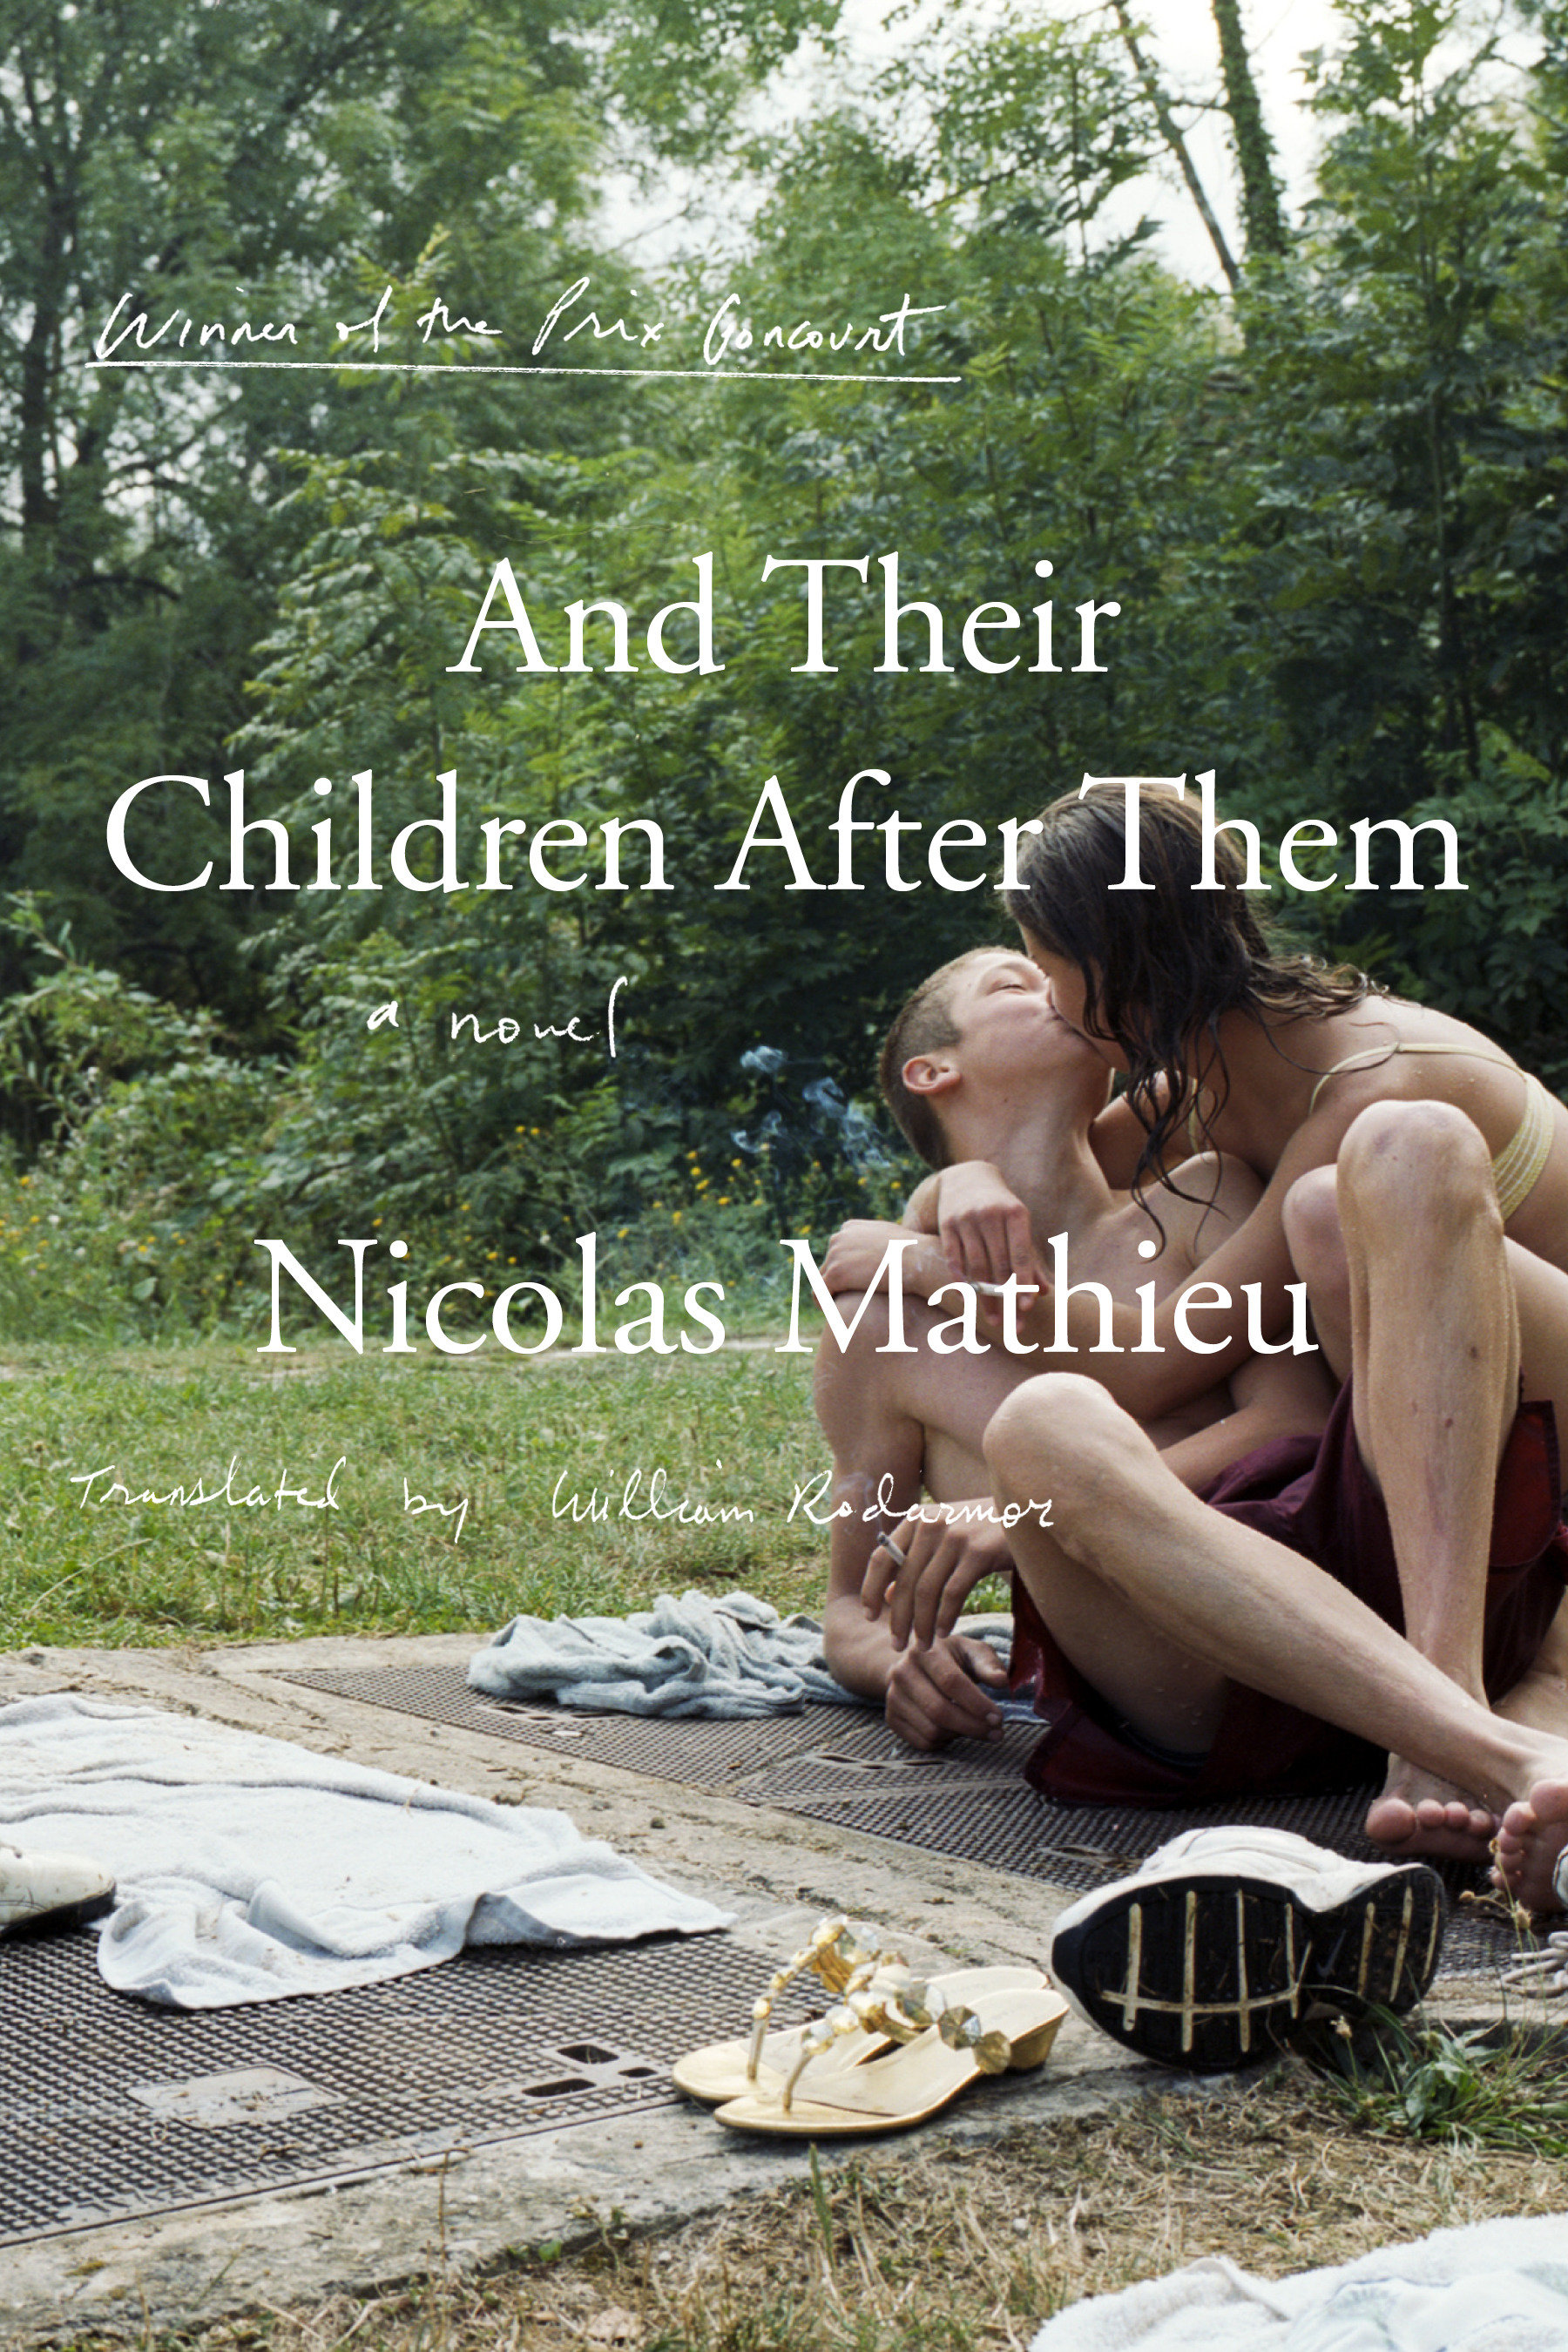 And Their Children After Them [electronic resource (downloadable eBook)] : a novel